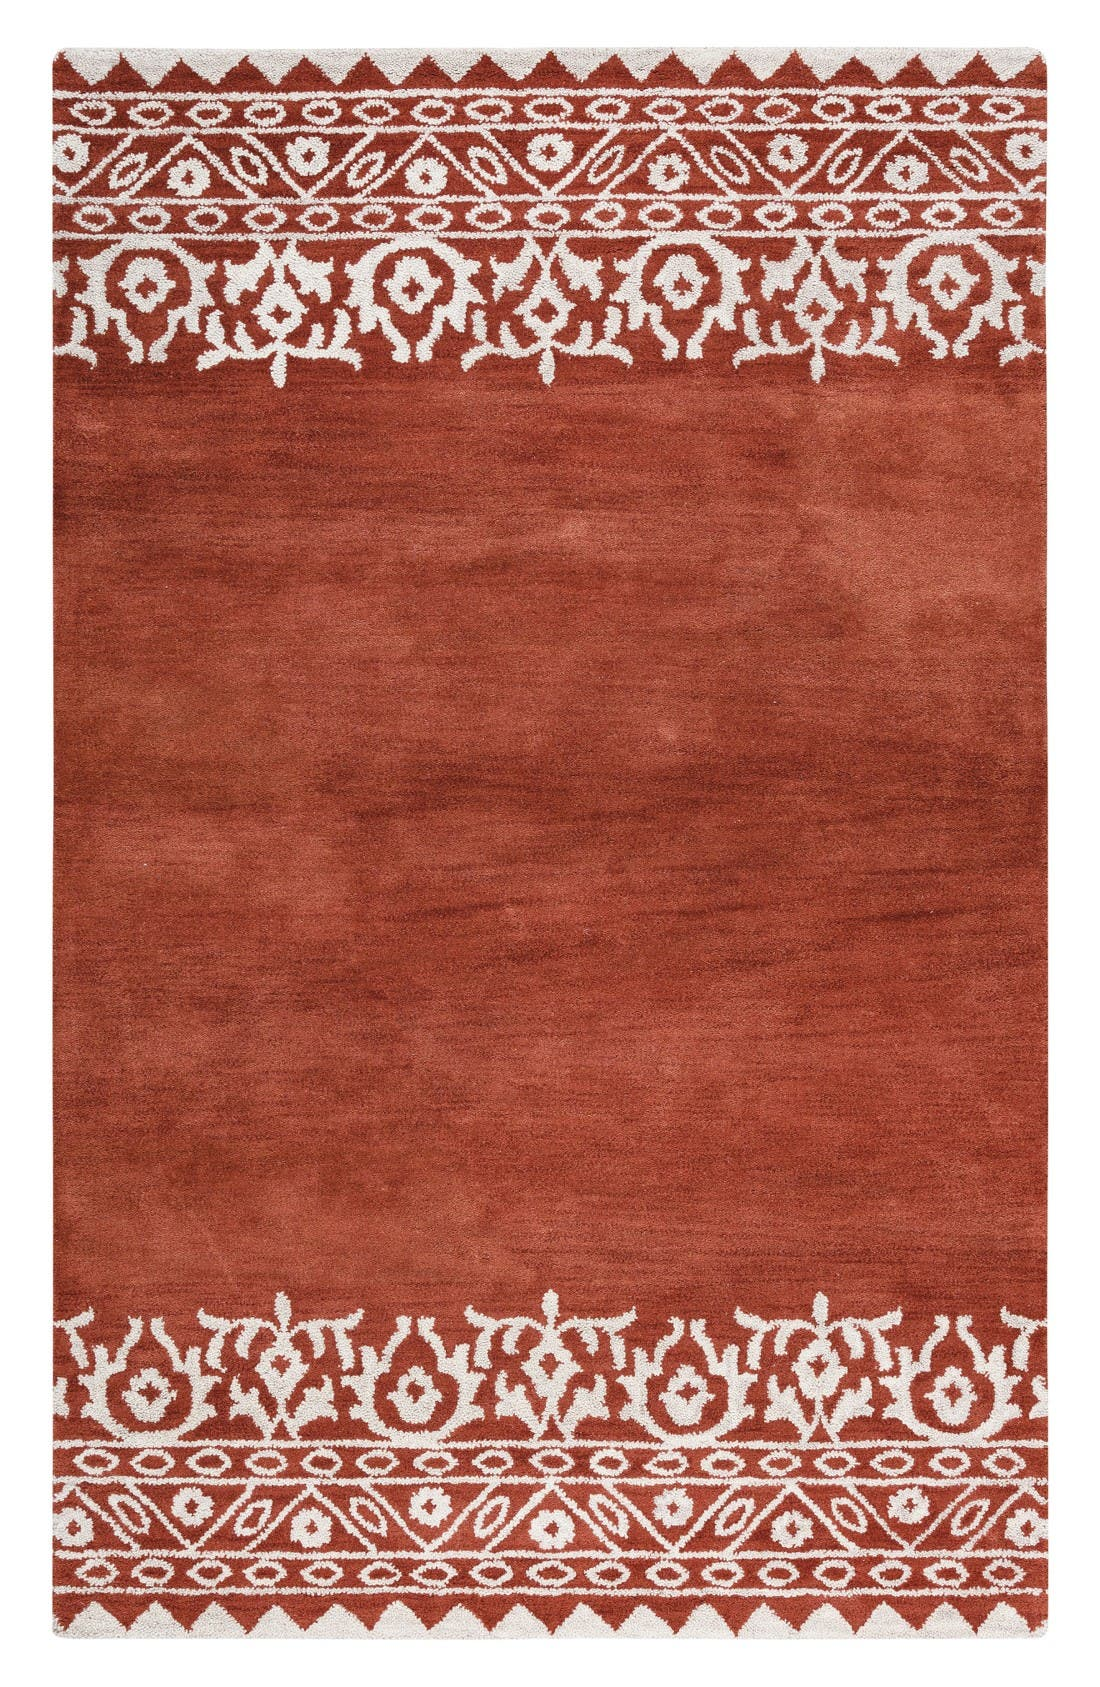 Framed Medallion Hand Tufted Wool Area Rug,                         Main,                         color, Rust